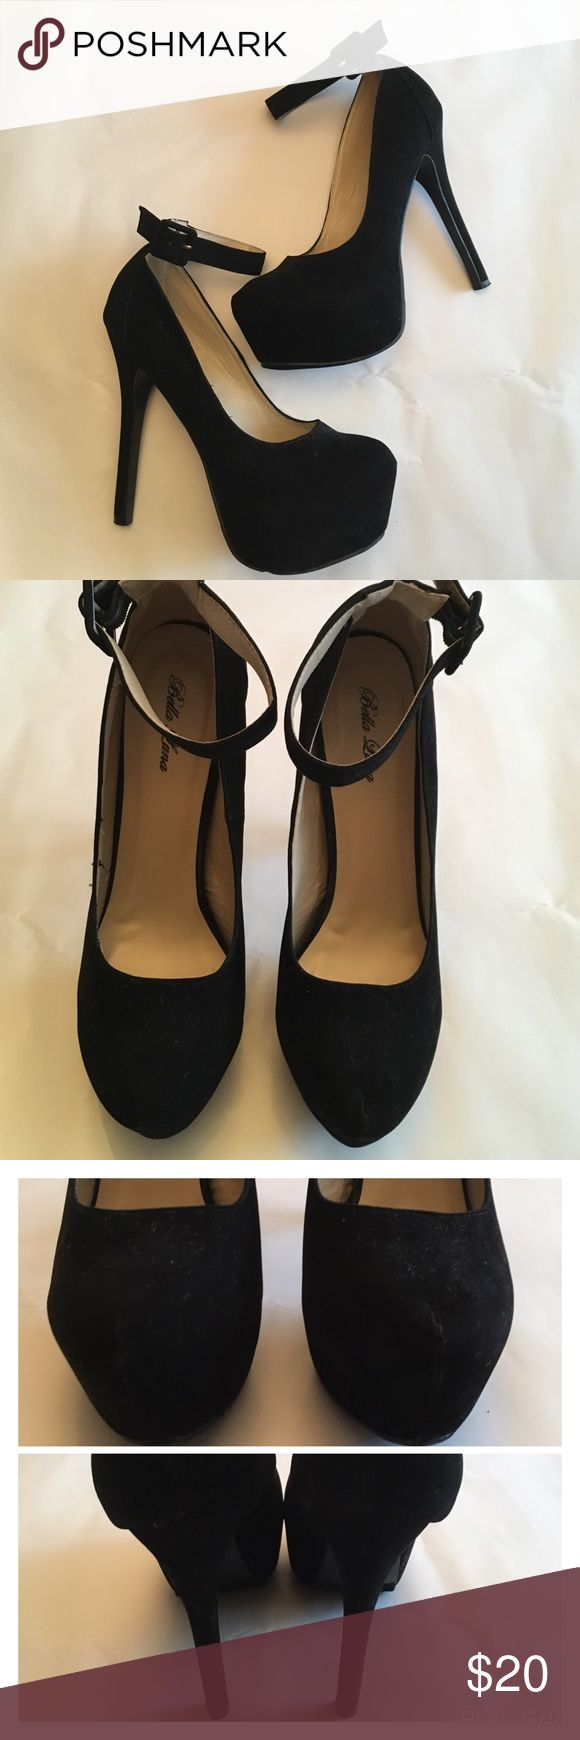 List✨ Bella Luna Black Suede Platform Pumps ECU These beauties are gorgeous and in excellent used condition, only worn a few times. They are 6 inches high with 2.5 inch platform for easy walking. Bella Luna Shoes Heels